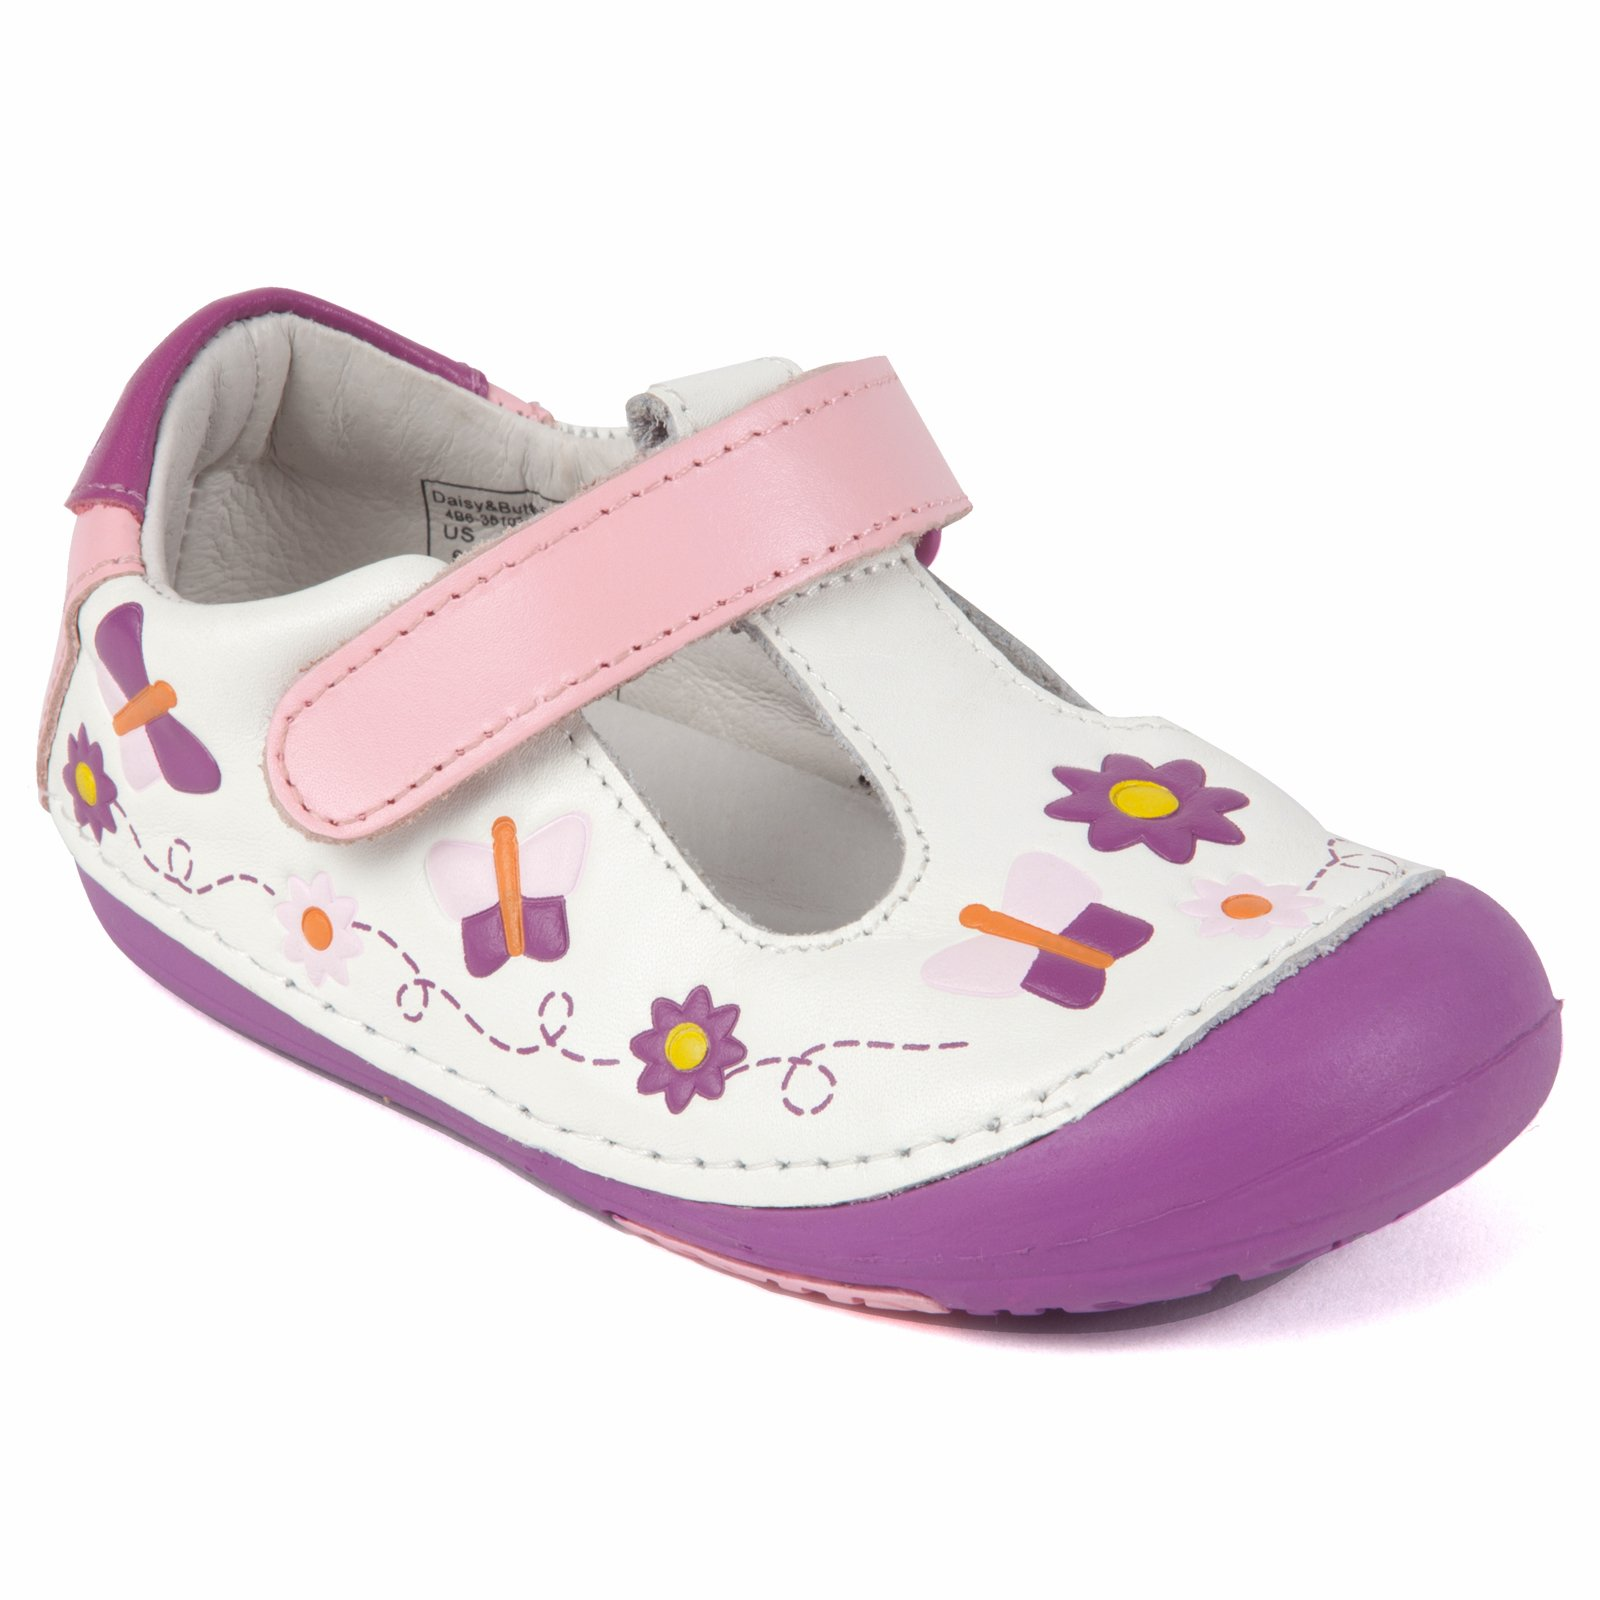 Momo Baby Girls First Walker/Toddler Daisy & Butterfly Leather Shoes - 6.5 M US Toddler